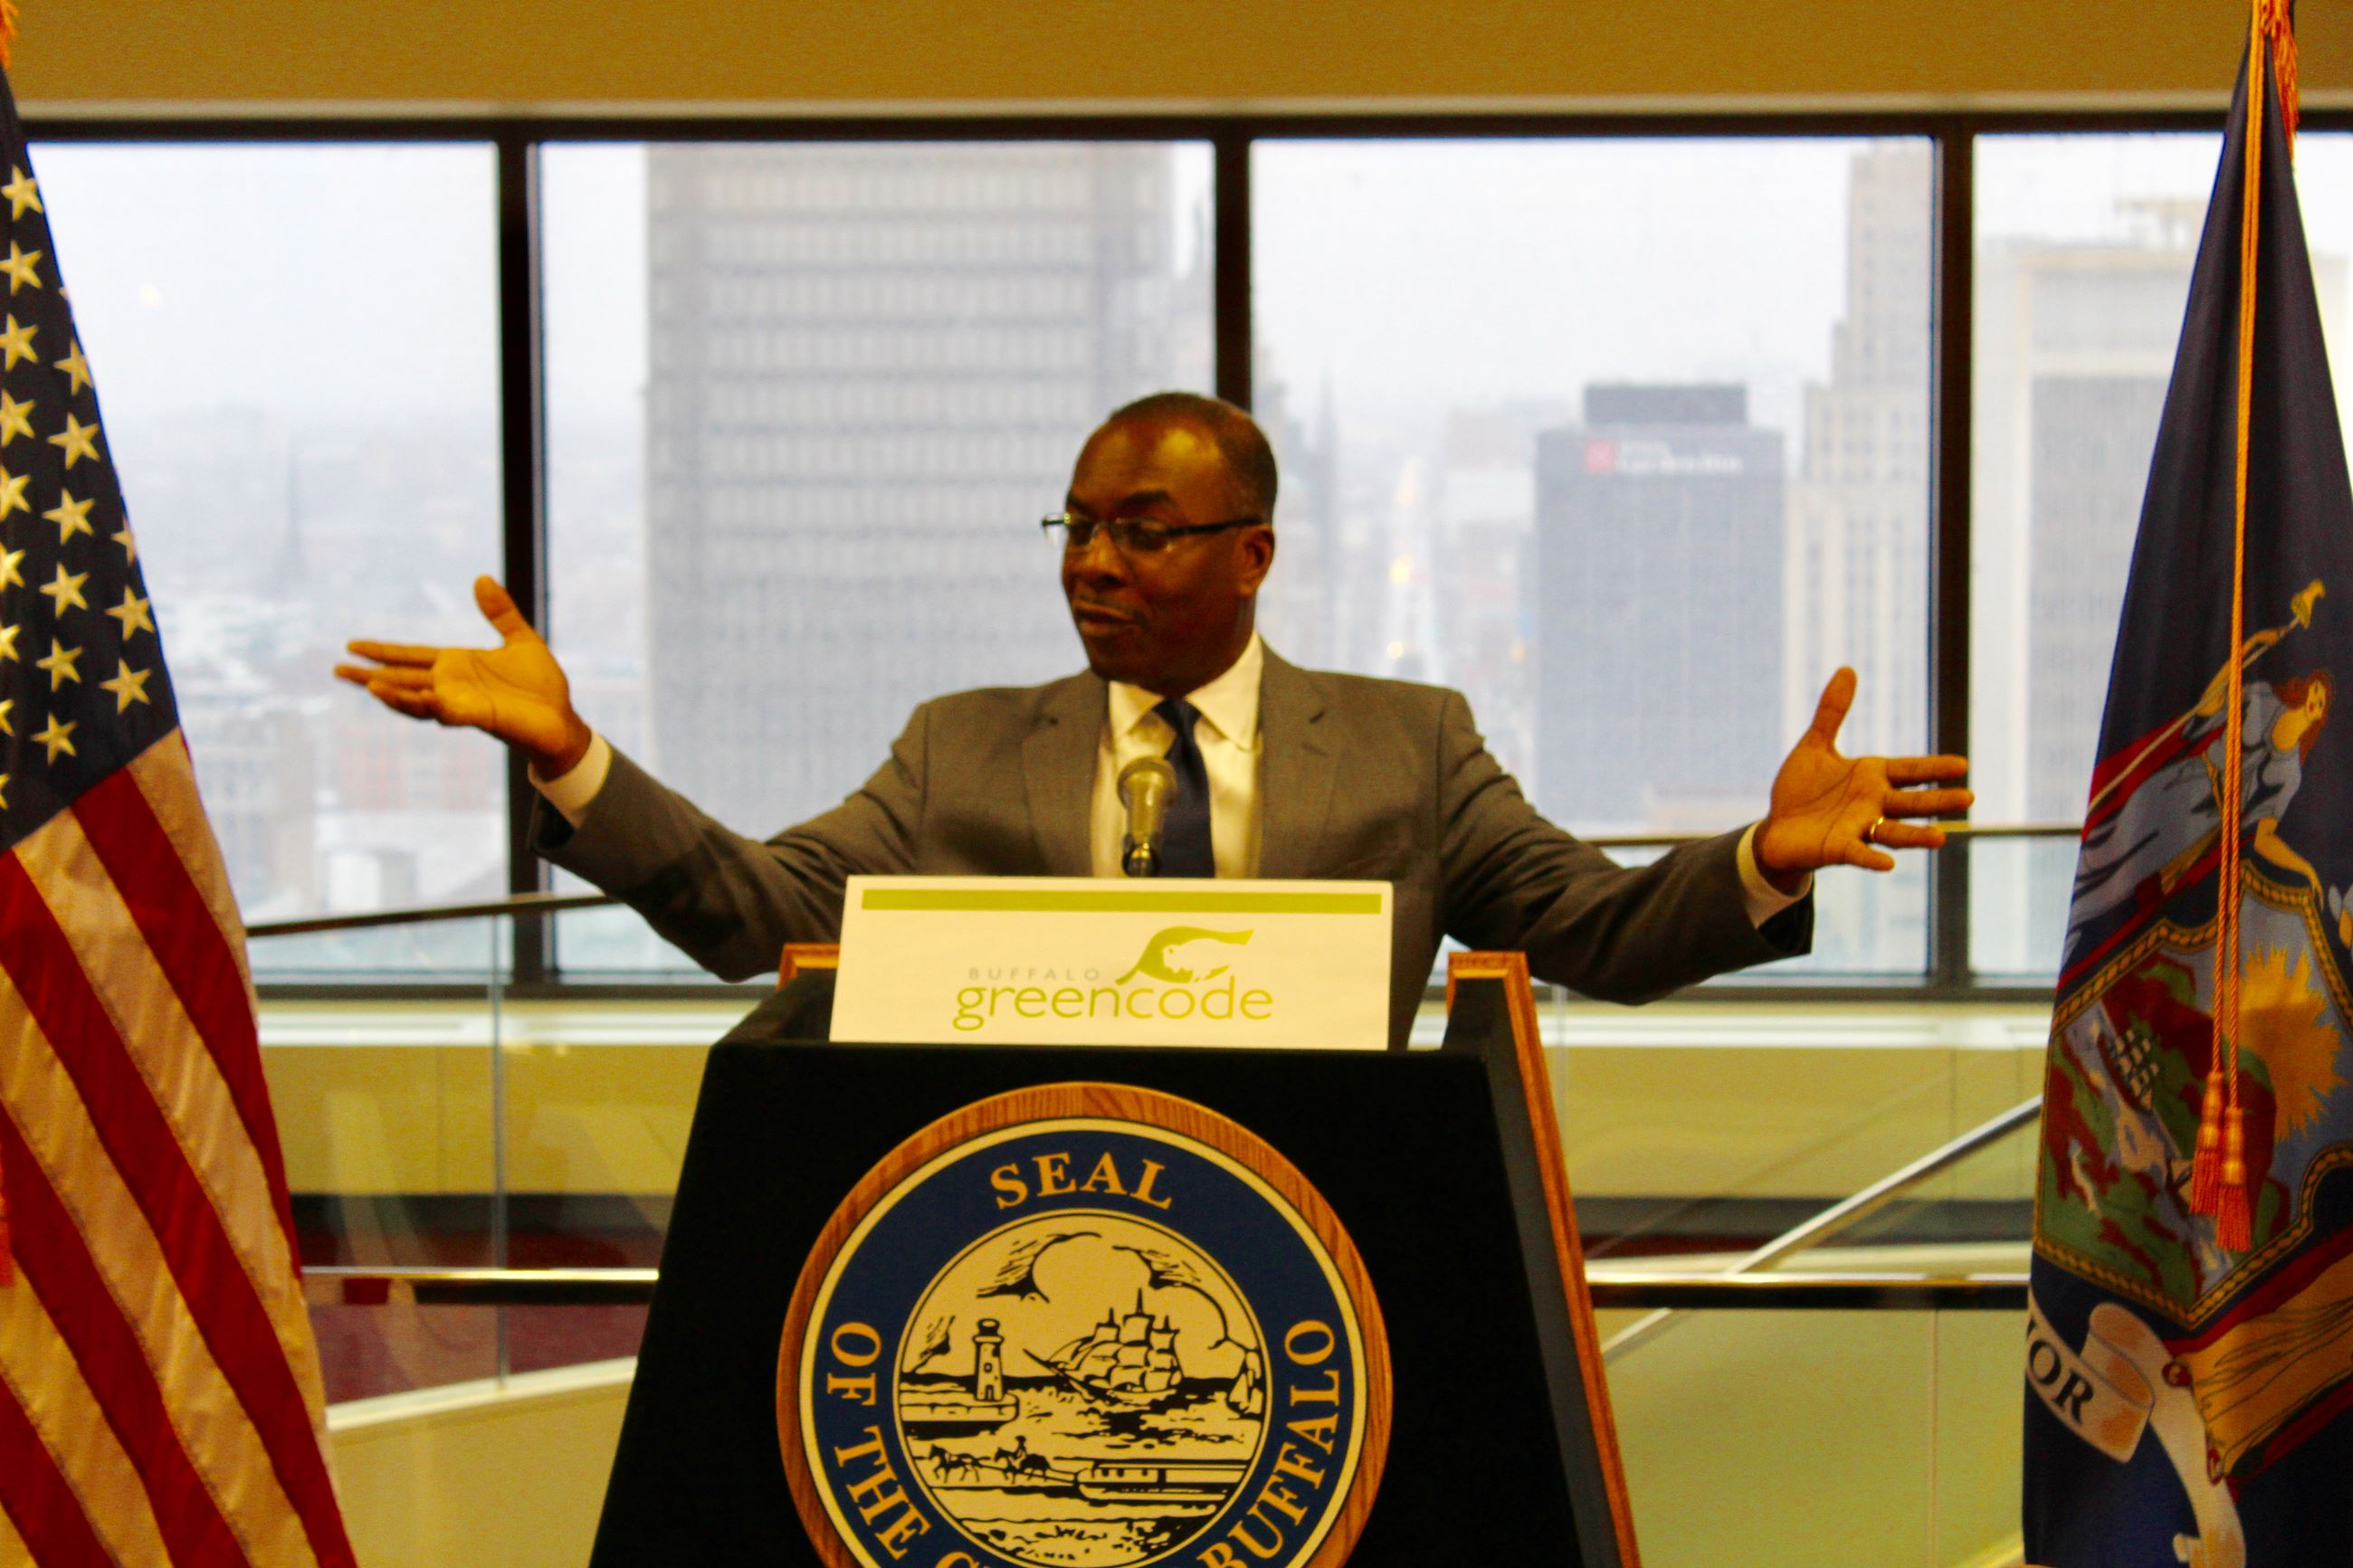 Mayor Brown and Common Council Host Signing Ceremony of City's New Unified Development Ordinance